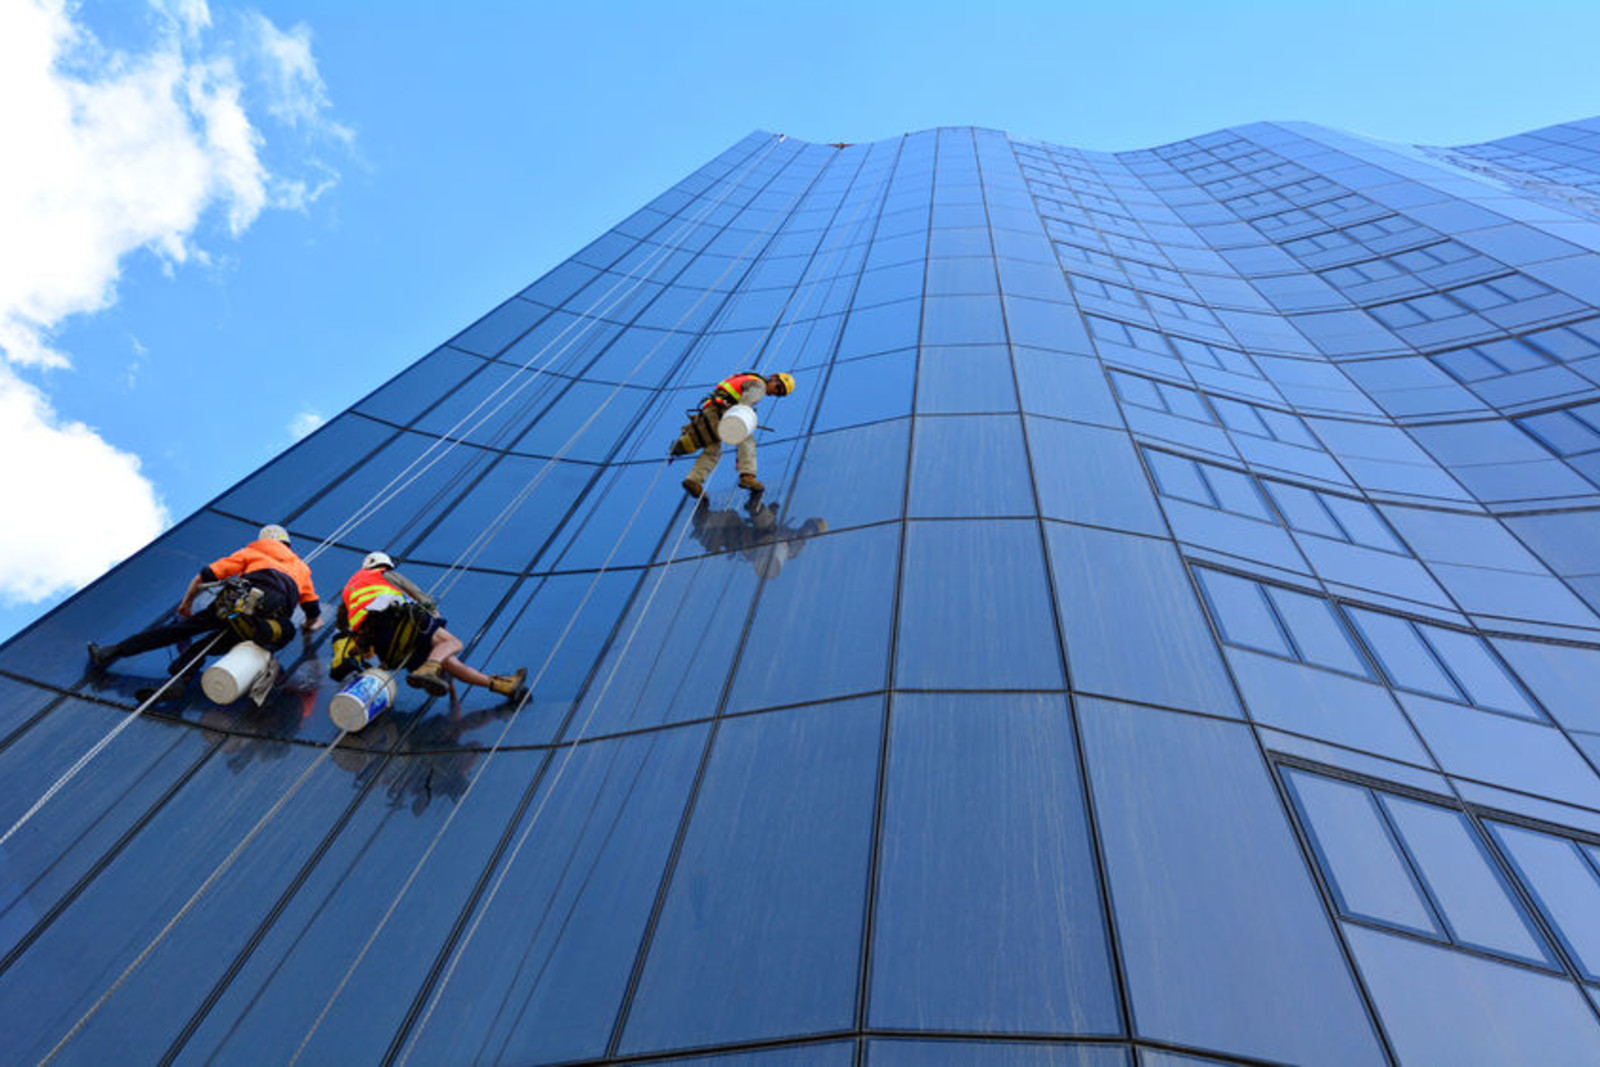 window washing dallas gutter cleaning exterior window cleaning for office spaces near you regardless if you work andor manage retail store hospital school gym or any other commercial window cleaning for offices commercial spaces near dallas